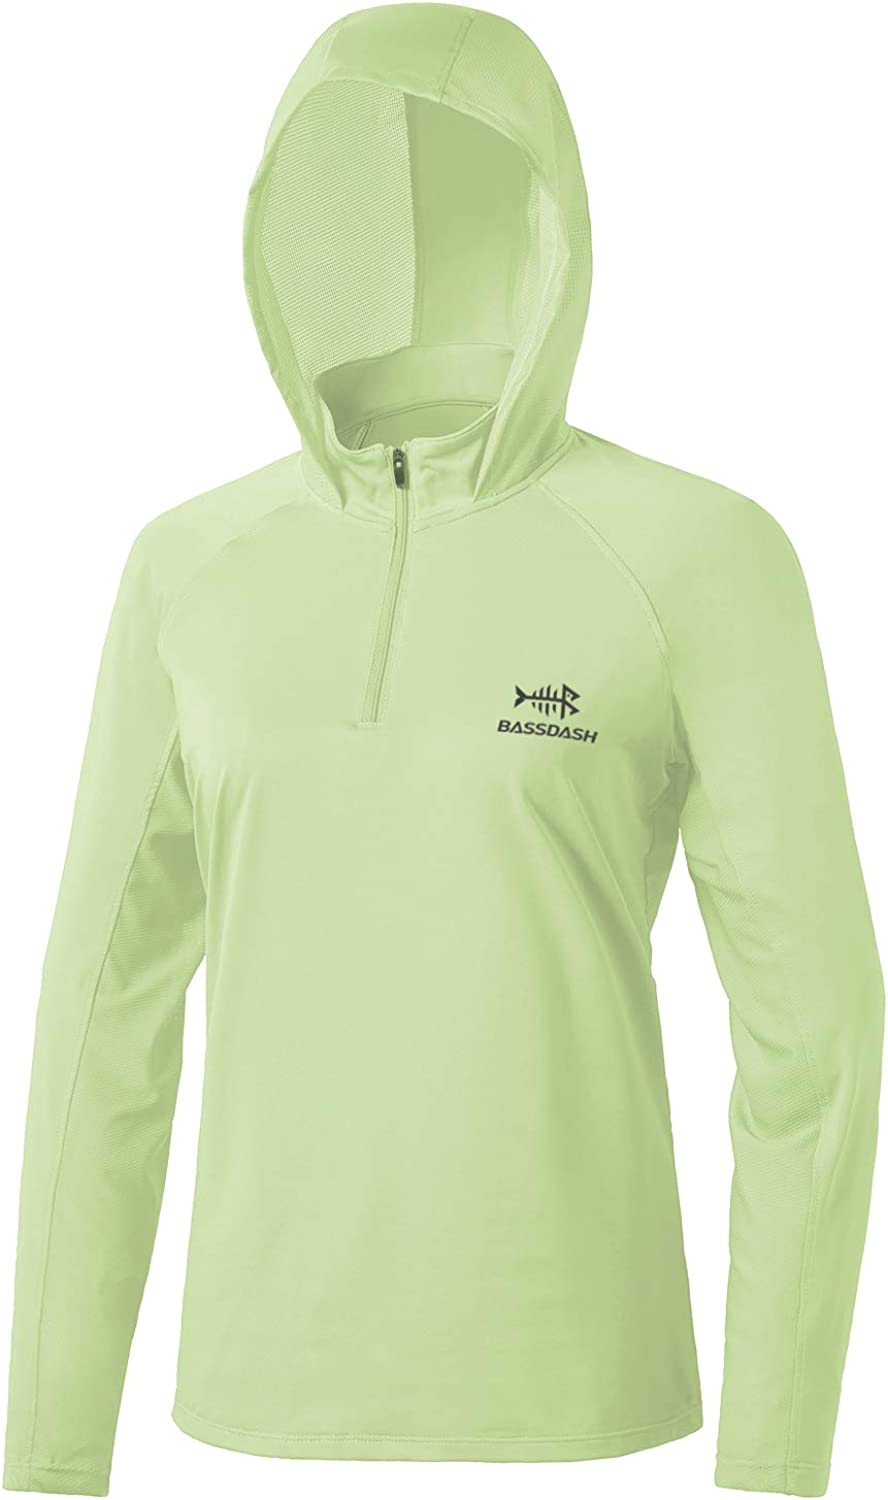 Bassdash Women's UPF 50+ Performance Hoodie Long Sleeve UV Fishing Hiking Shirt